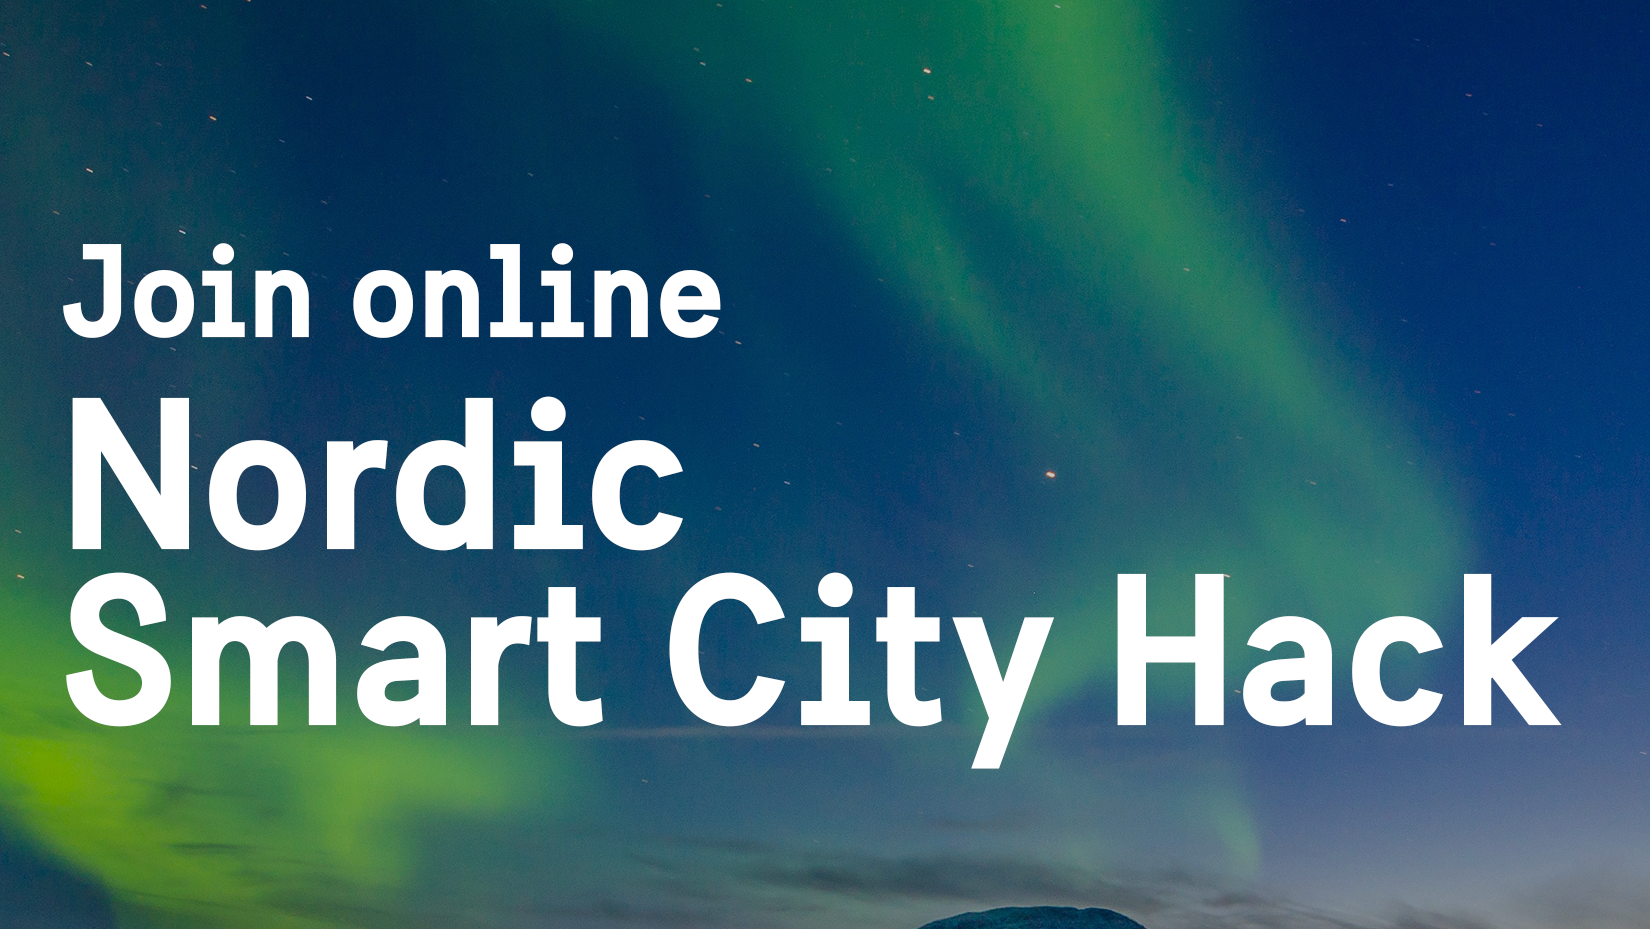 Text: Nordic Smart City Hack